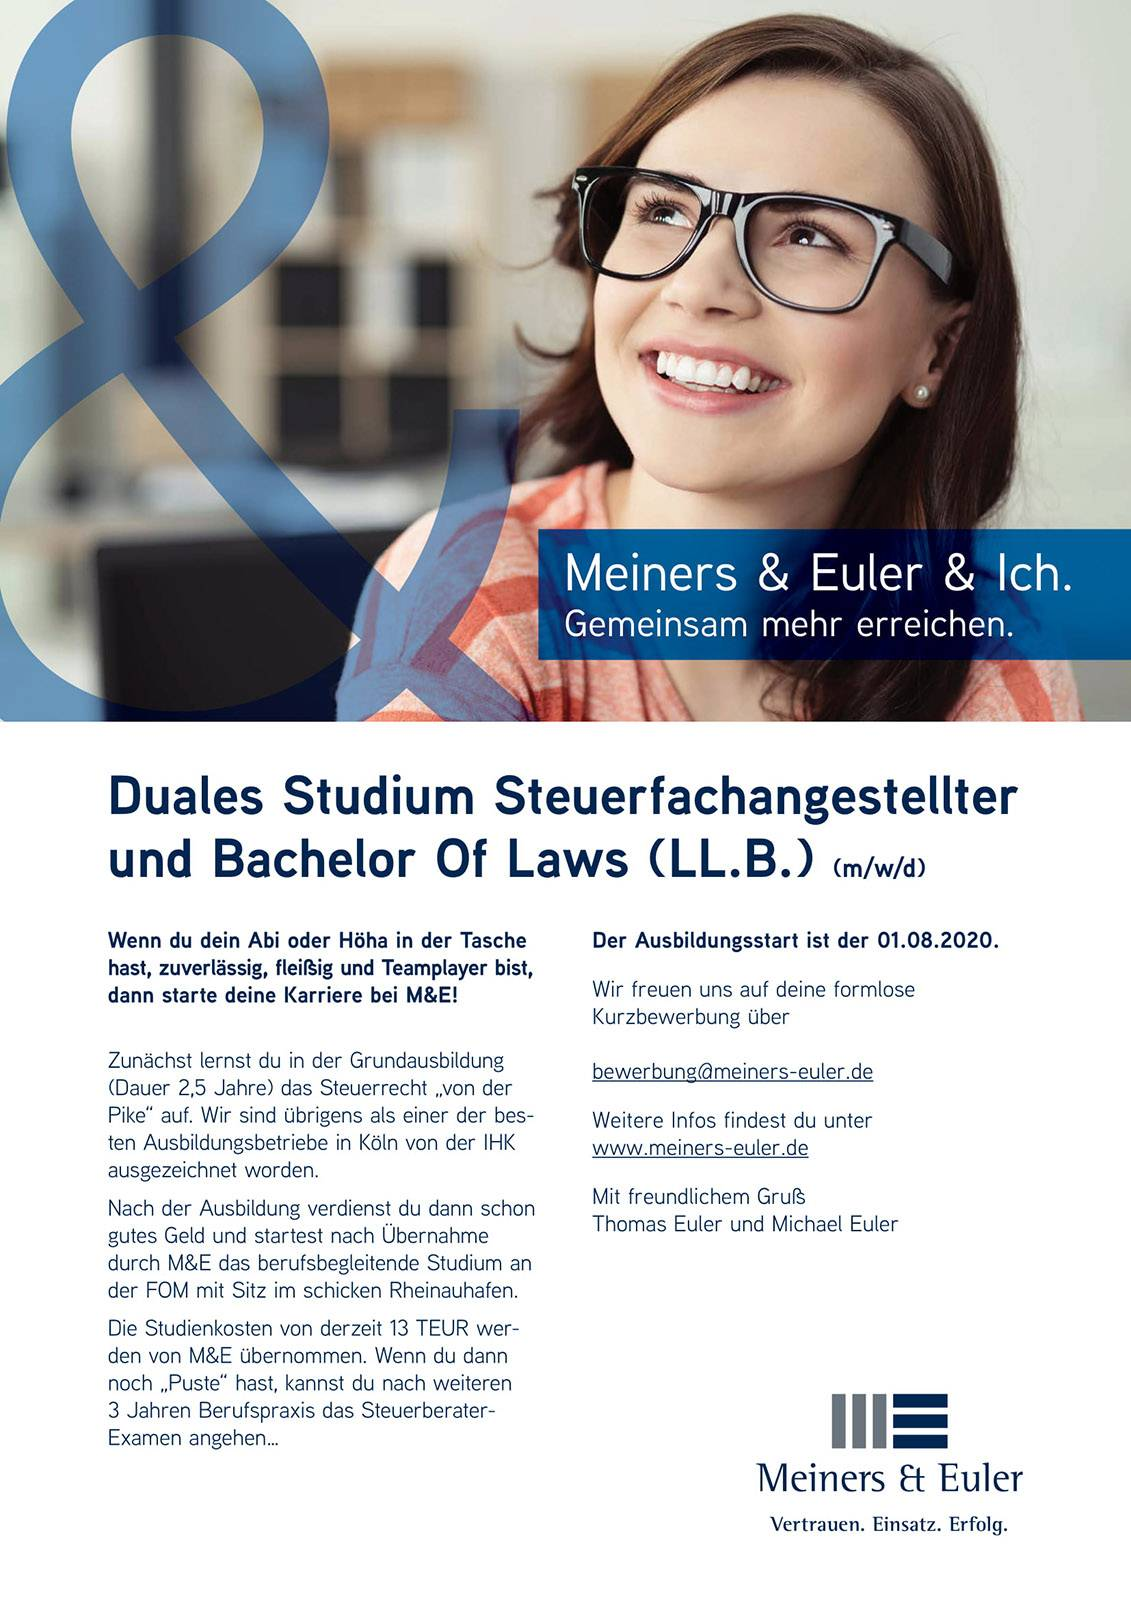 Duales Studium Steuerfachangestellter und Bachelor Of Laws (LL.B.)